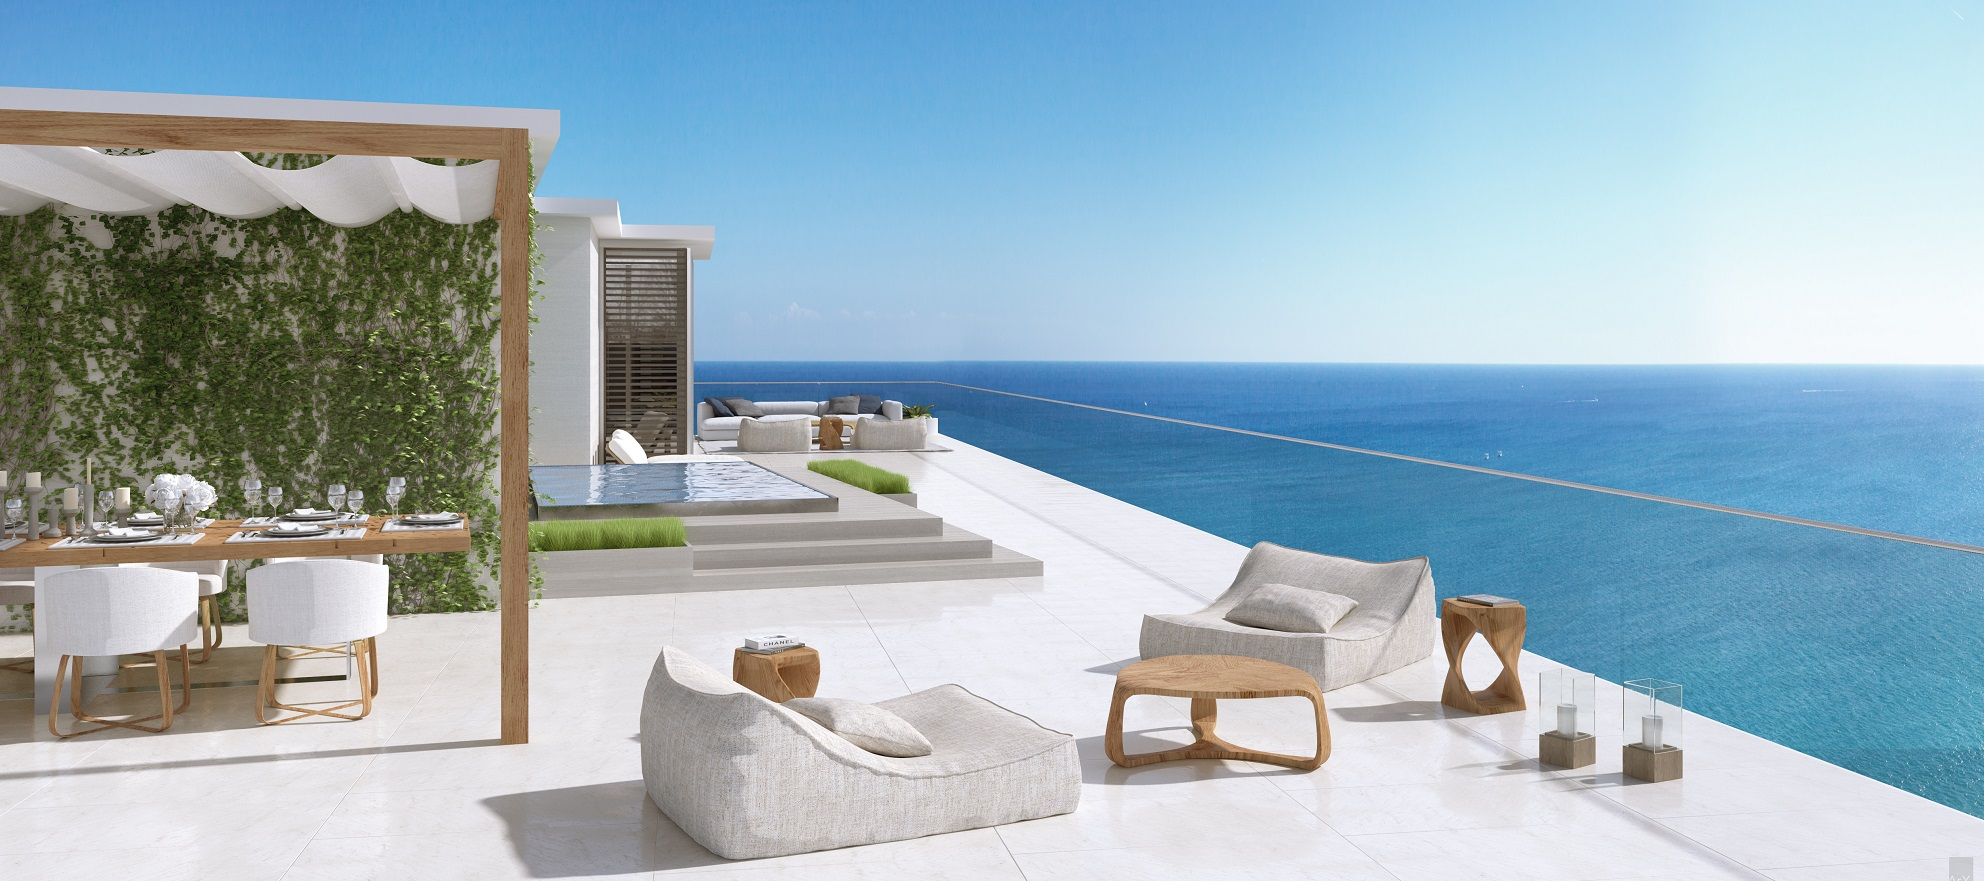 Luxury listing: Fort Lauderdale's most expensive listing